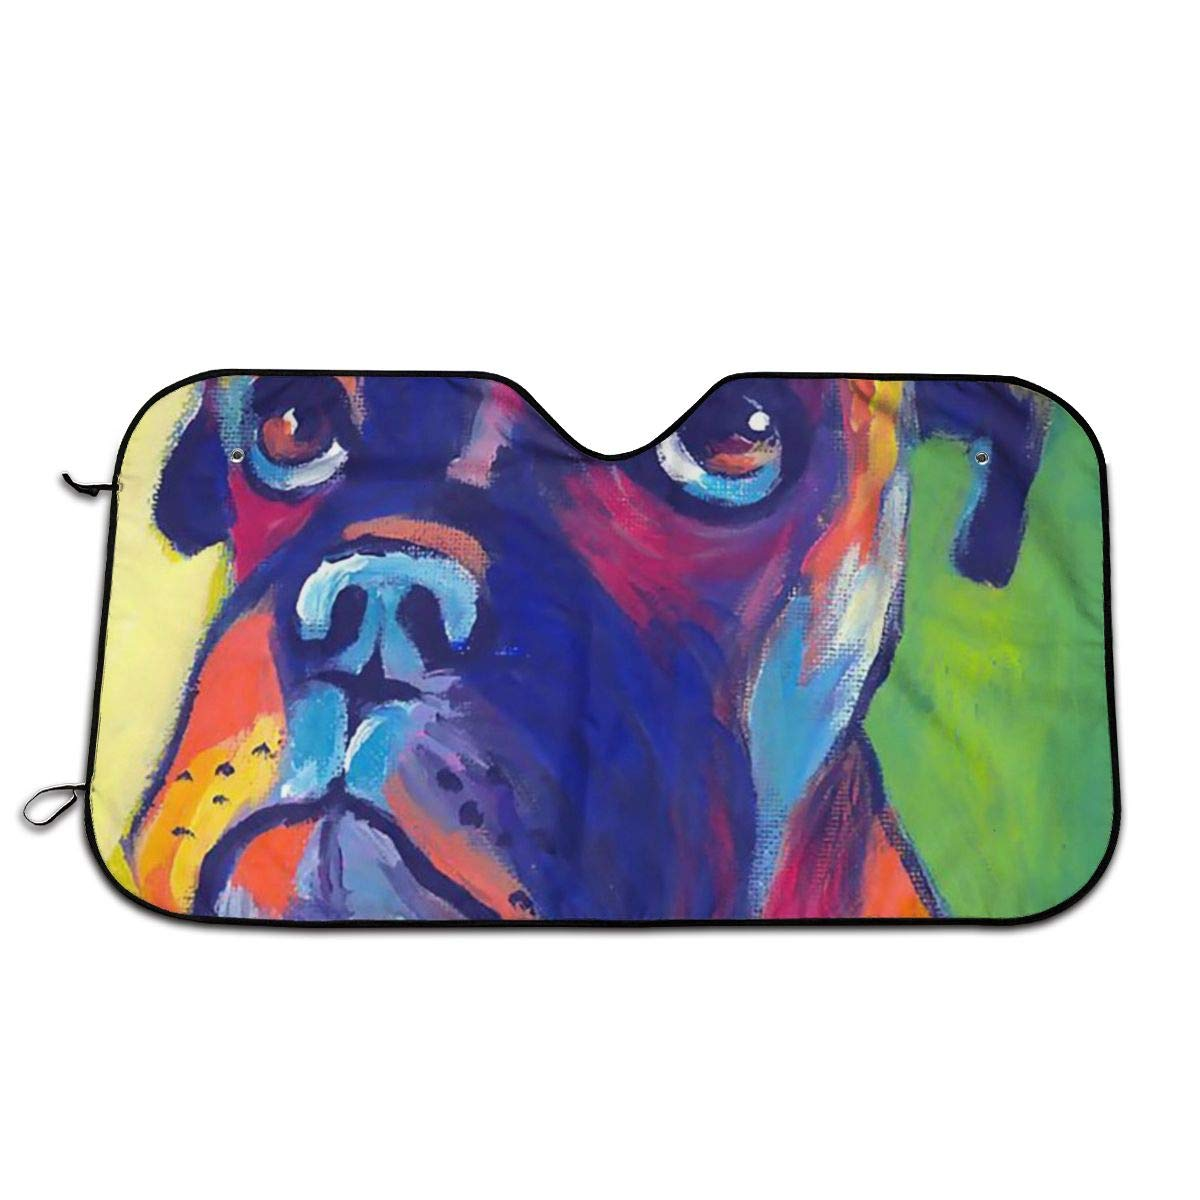 Max 85% OFF Adiabatic Car All stores are sold Sunshade Whimsical Boxer Auto Dog Windwh Painting